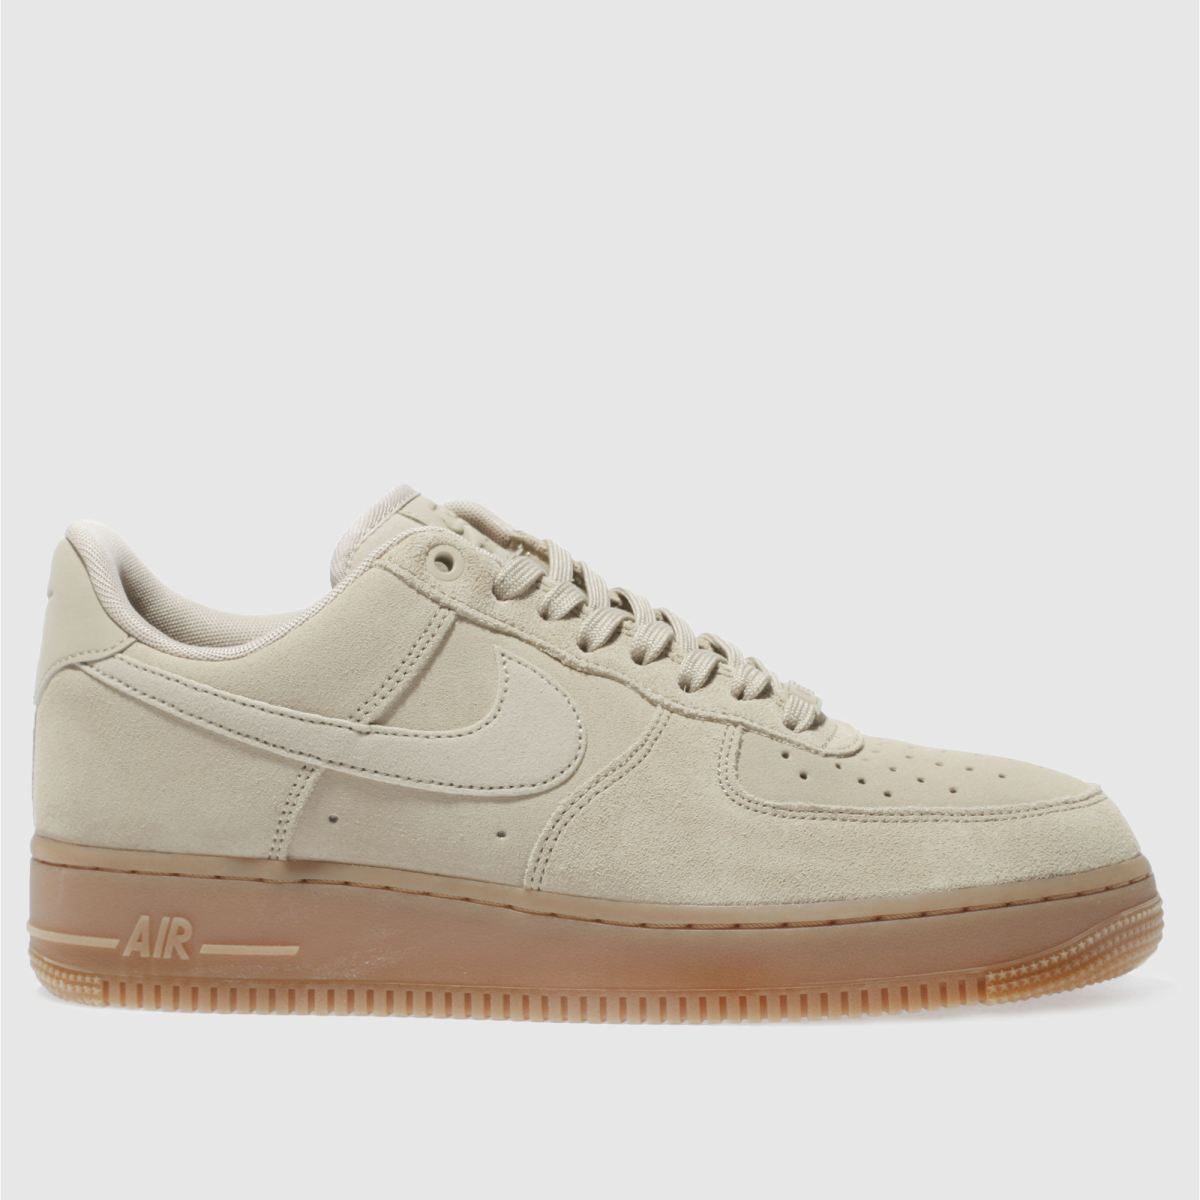 Nike Stone Air Force 1 Trainers